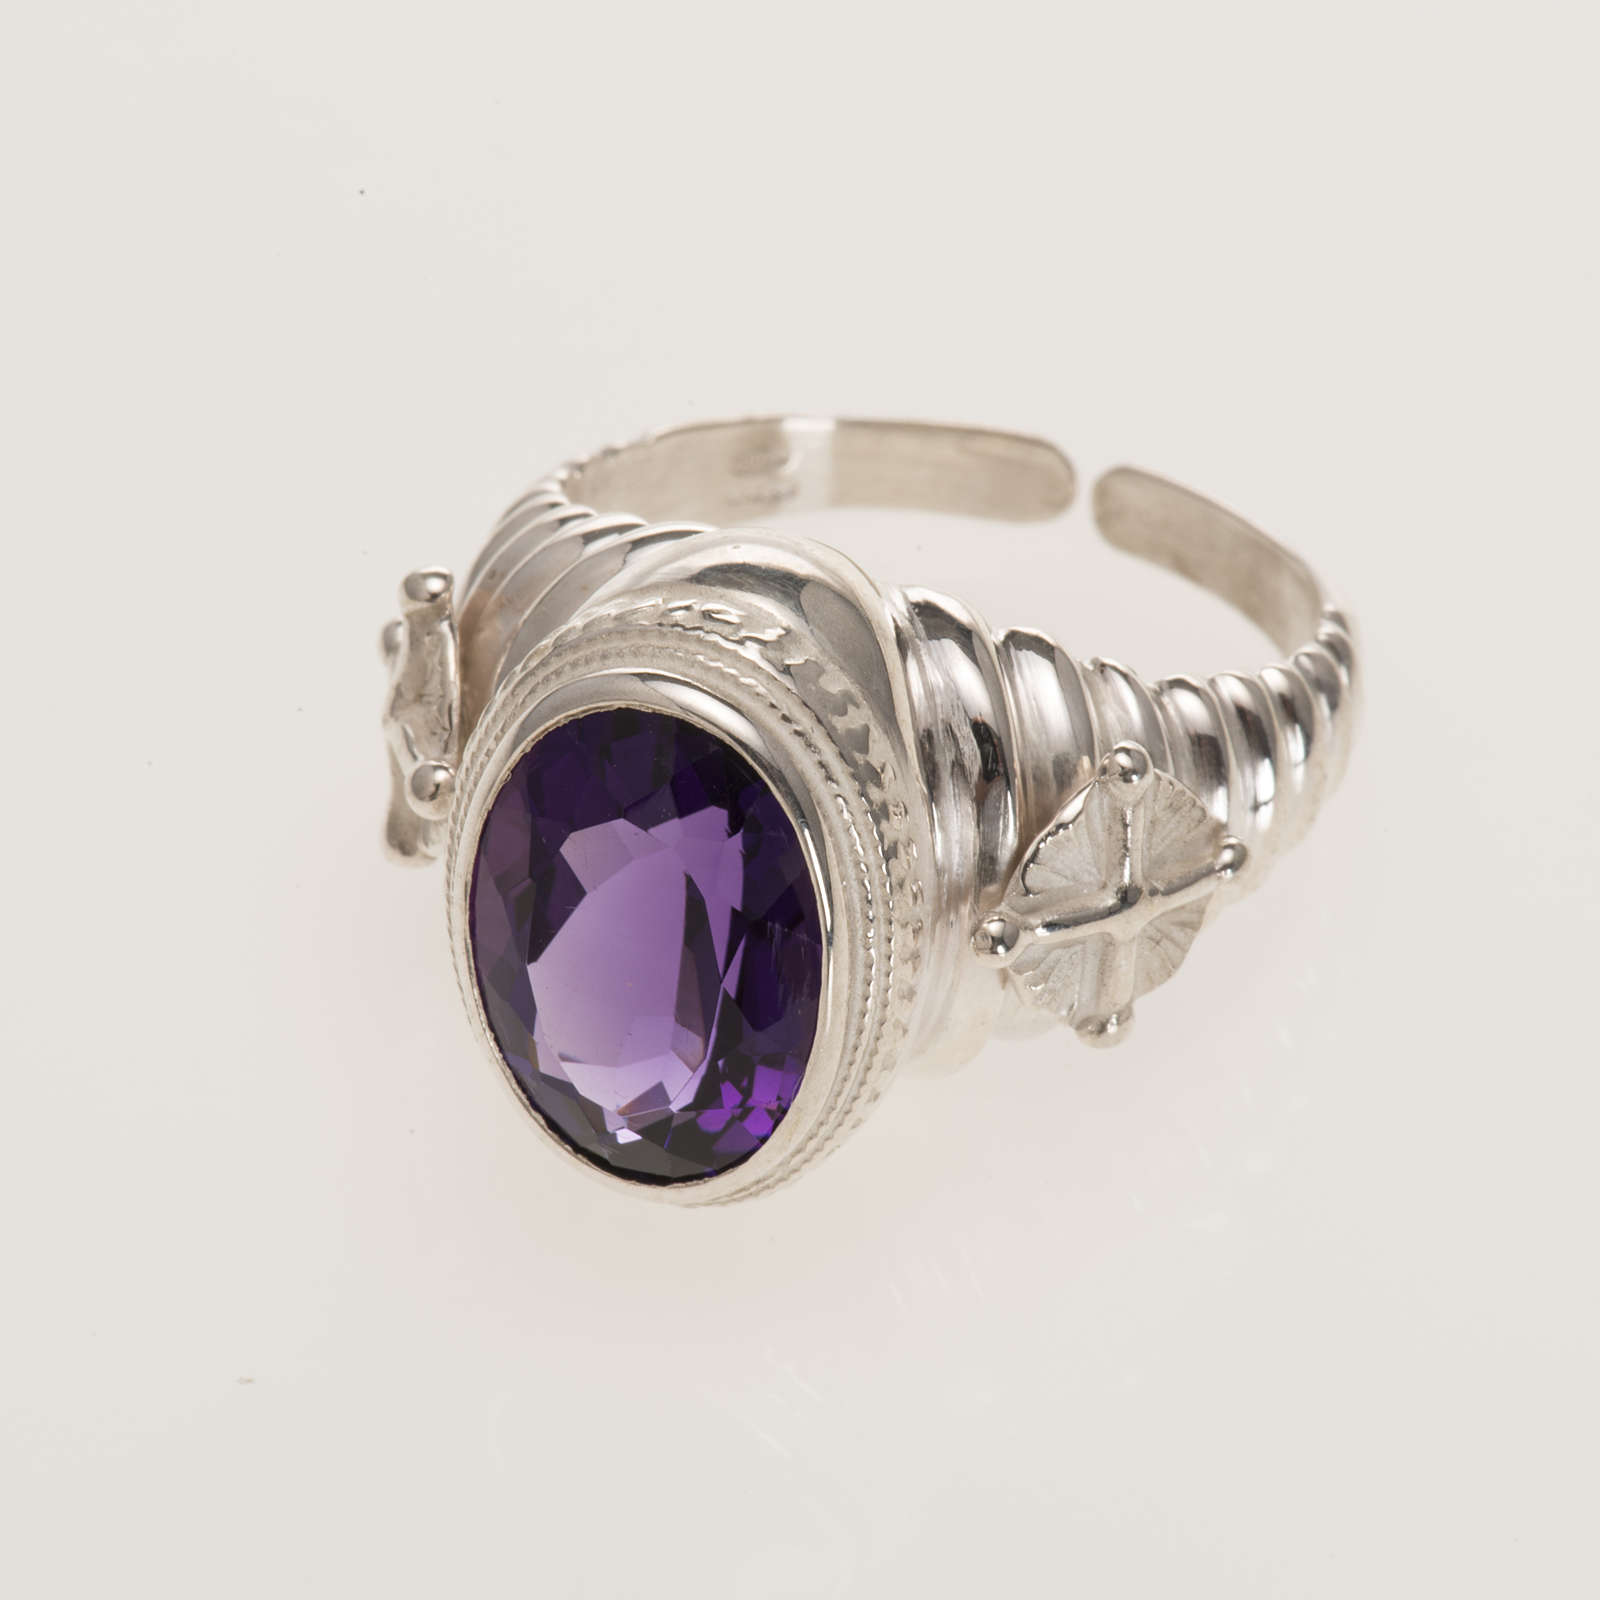 Bishop's ring made of 800 silver with amethyst 3